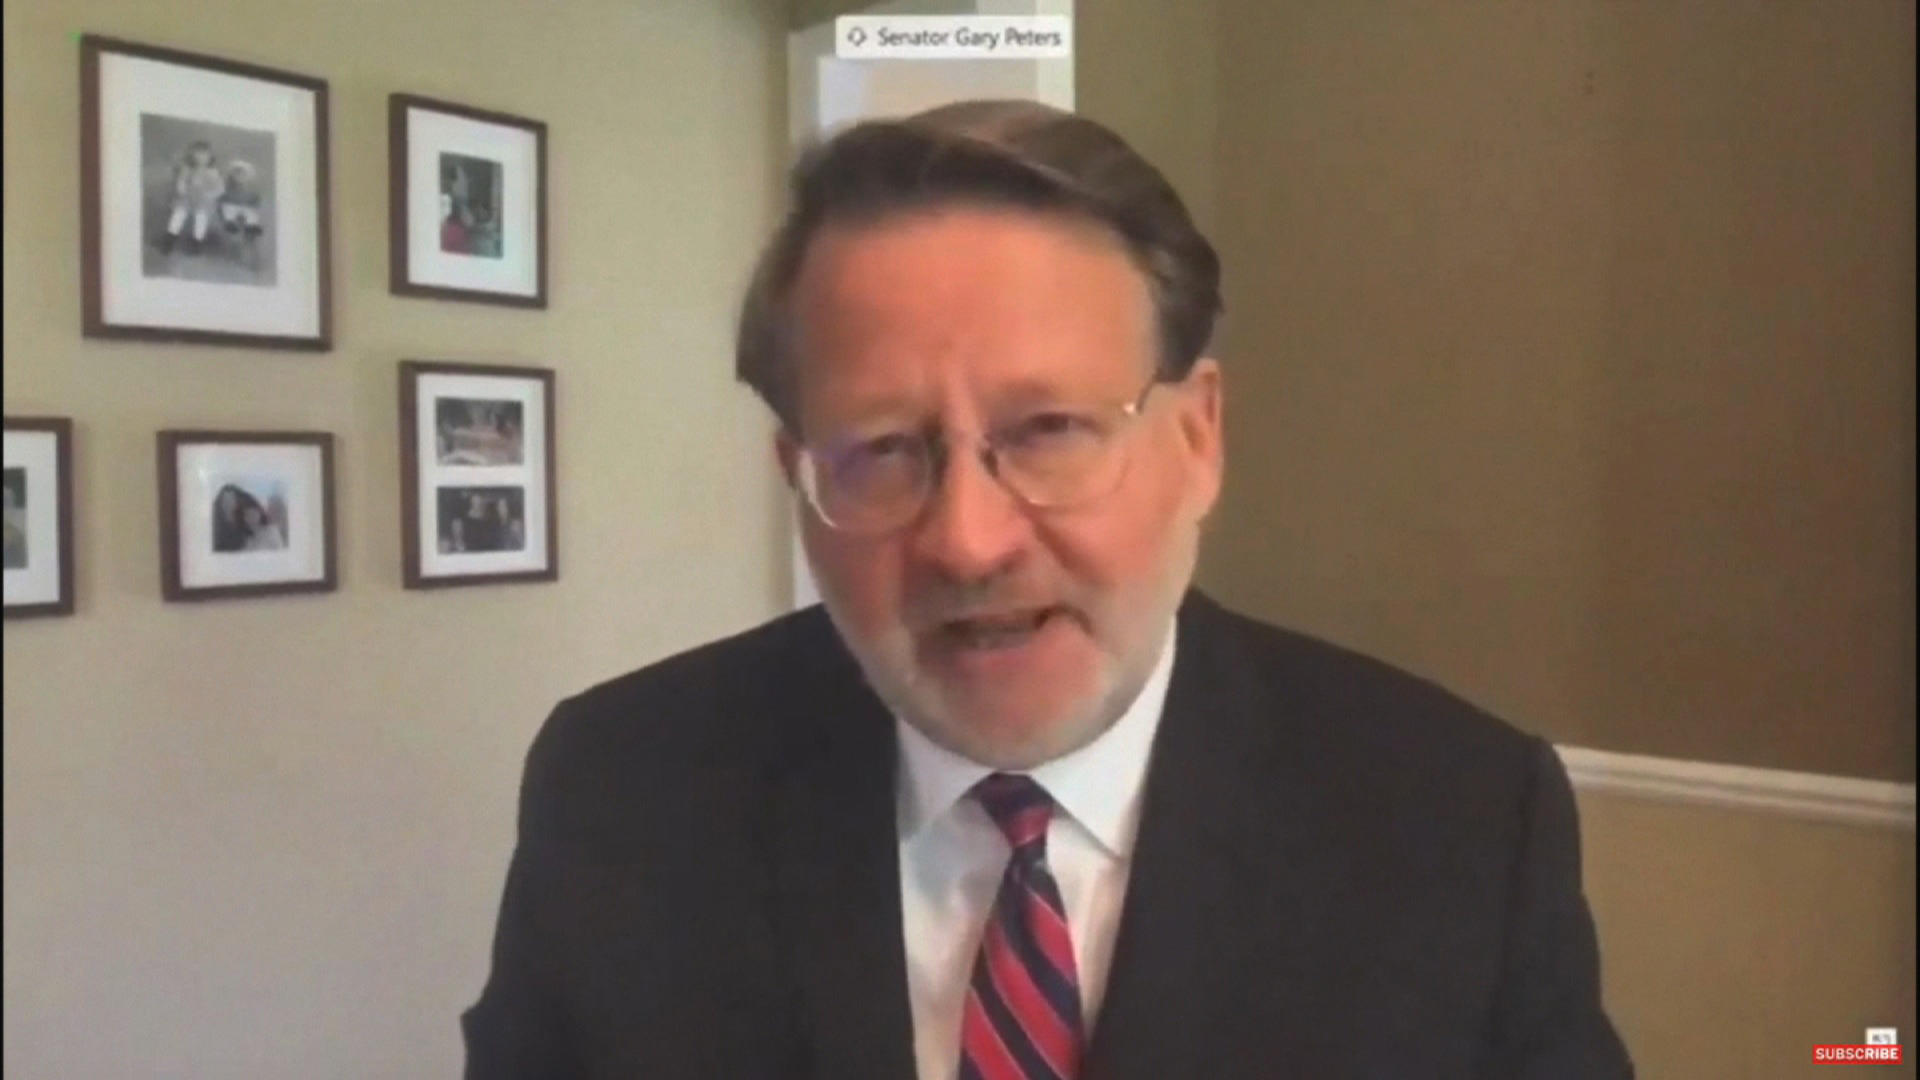 DemocraticSen. Gary Peters, the ranking member on the Senate Homeland Security and Governmental Affairs Committee, speaks during a virtual hearing of the Senate Homeland Security and Governmental Affairs Committee on August 21.